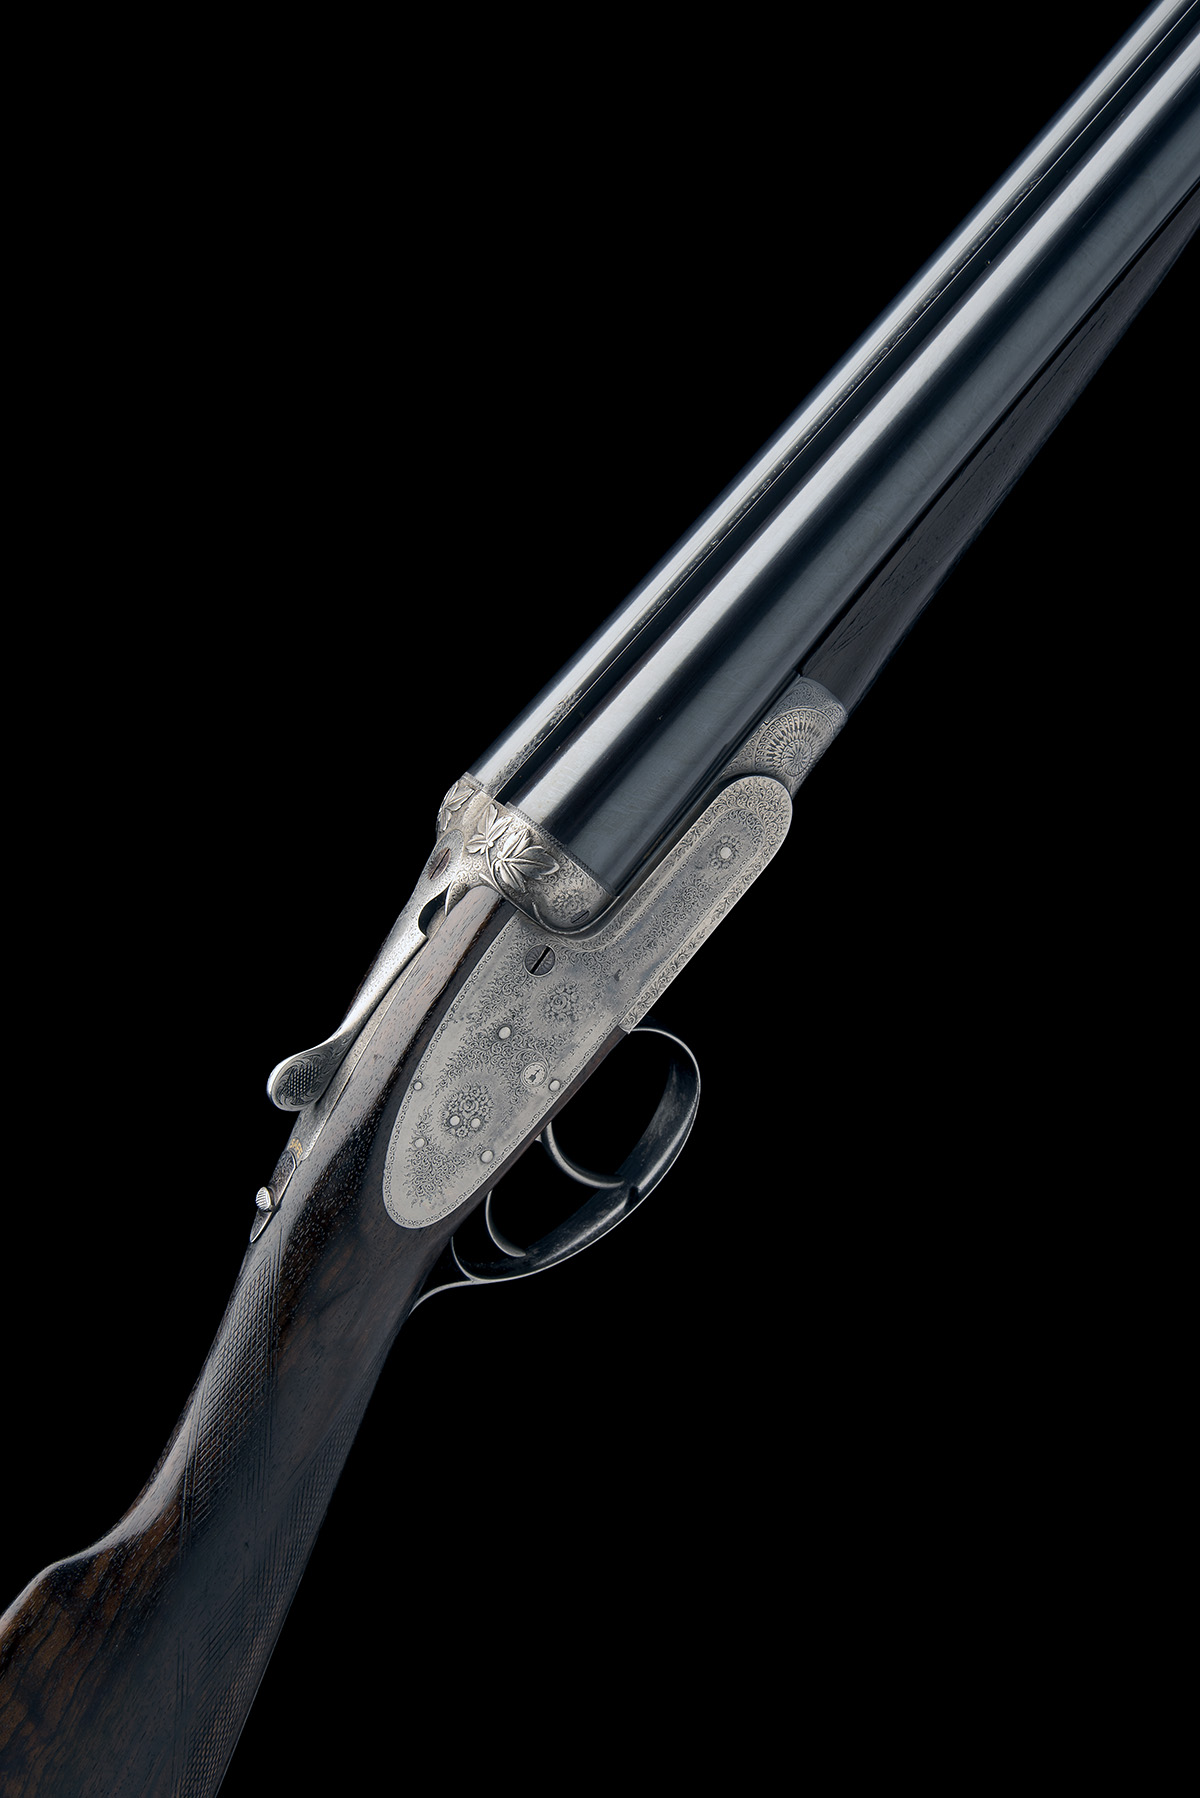 J. PURDEY & SONS A 12-BORE SELF-OPENING SIDELOCK EJECTOR, serial no. 16229, for 1898, 26in.